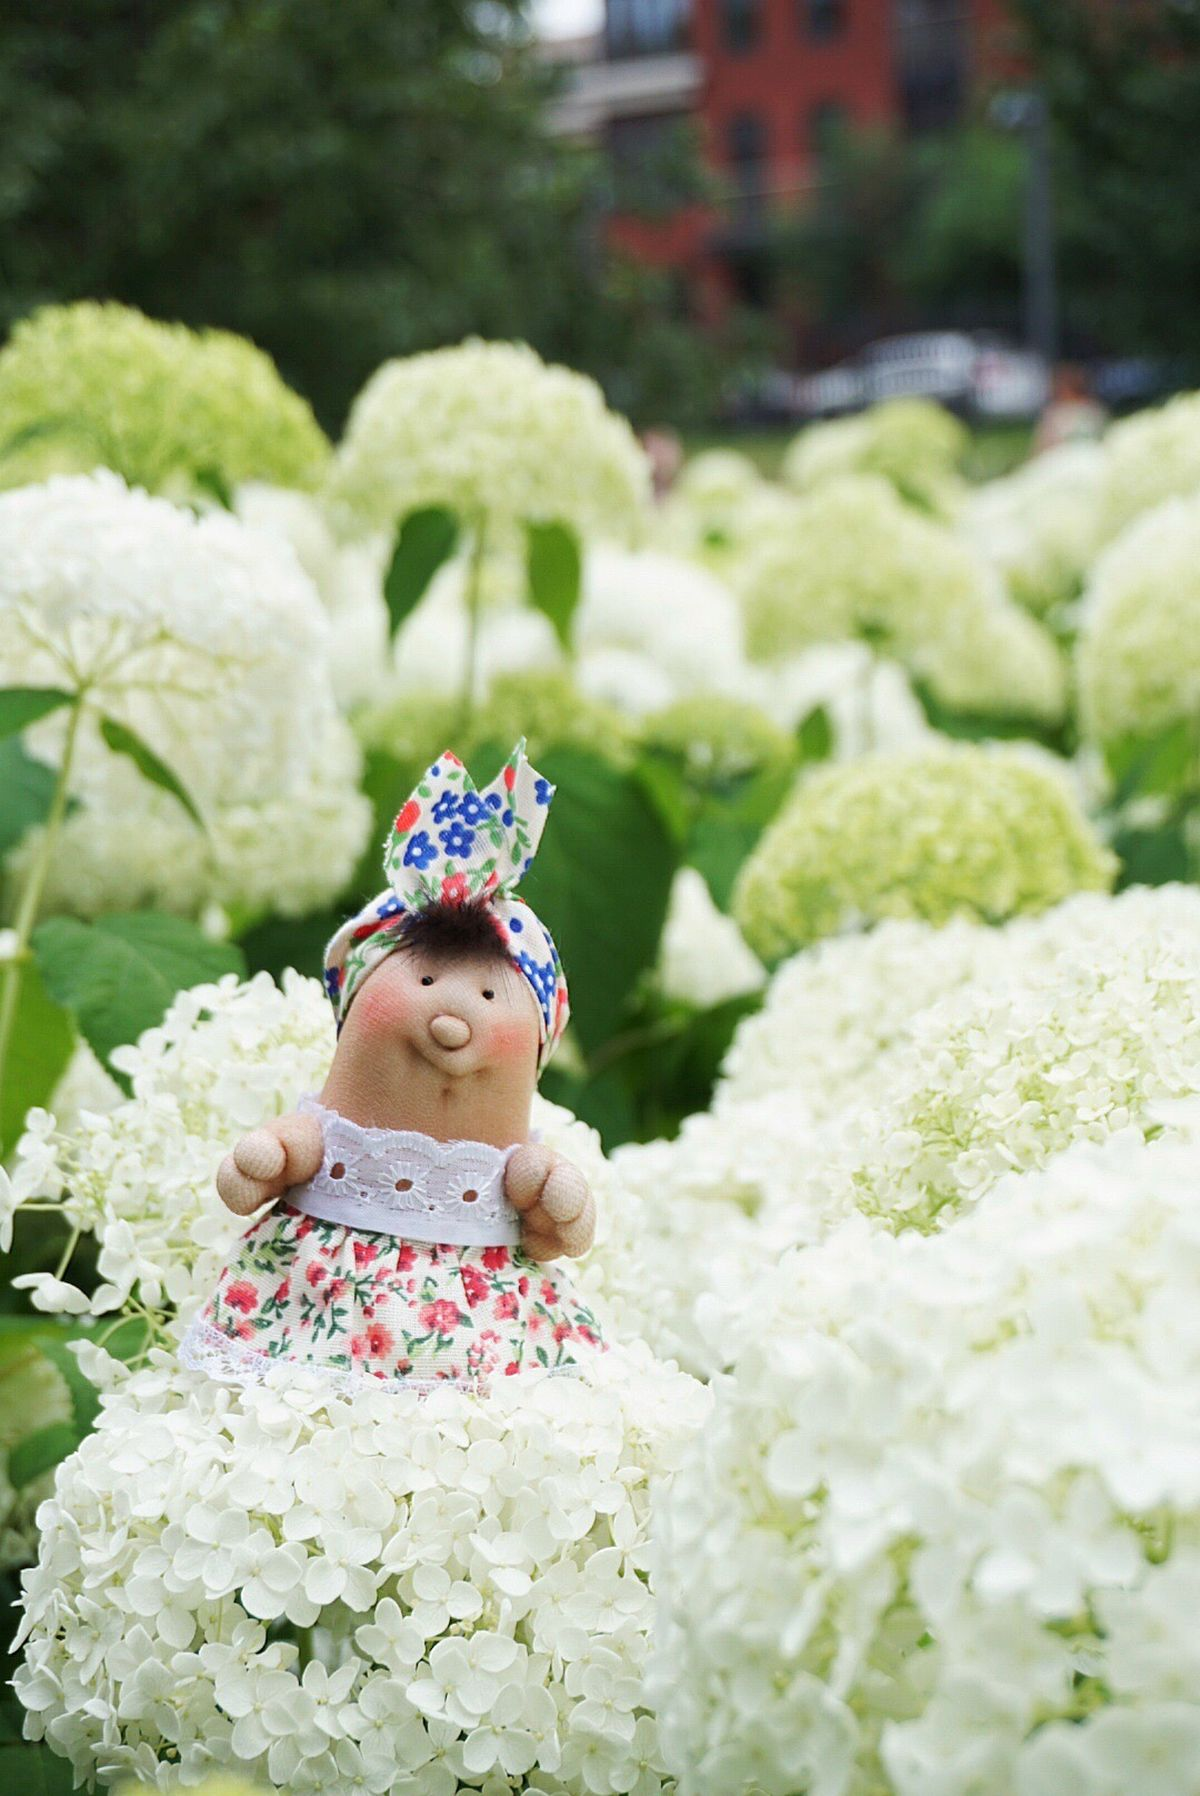 Crown Laurel Wreath One Person Wreath Portrait Flower People Close-up Freshness Queen - Royal Person Outdoors Adults Only Adult Day Grandma-Nina Naturelovers Nature Beauty Nature Porn Flowerporn Flower Head Nature